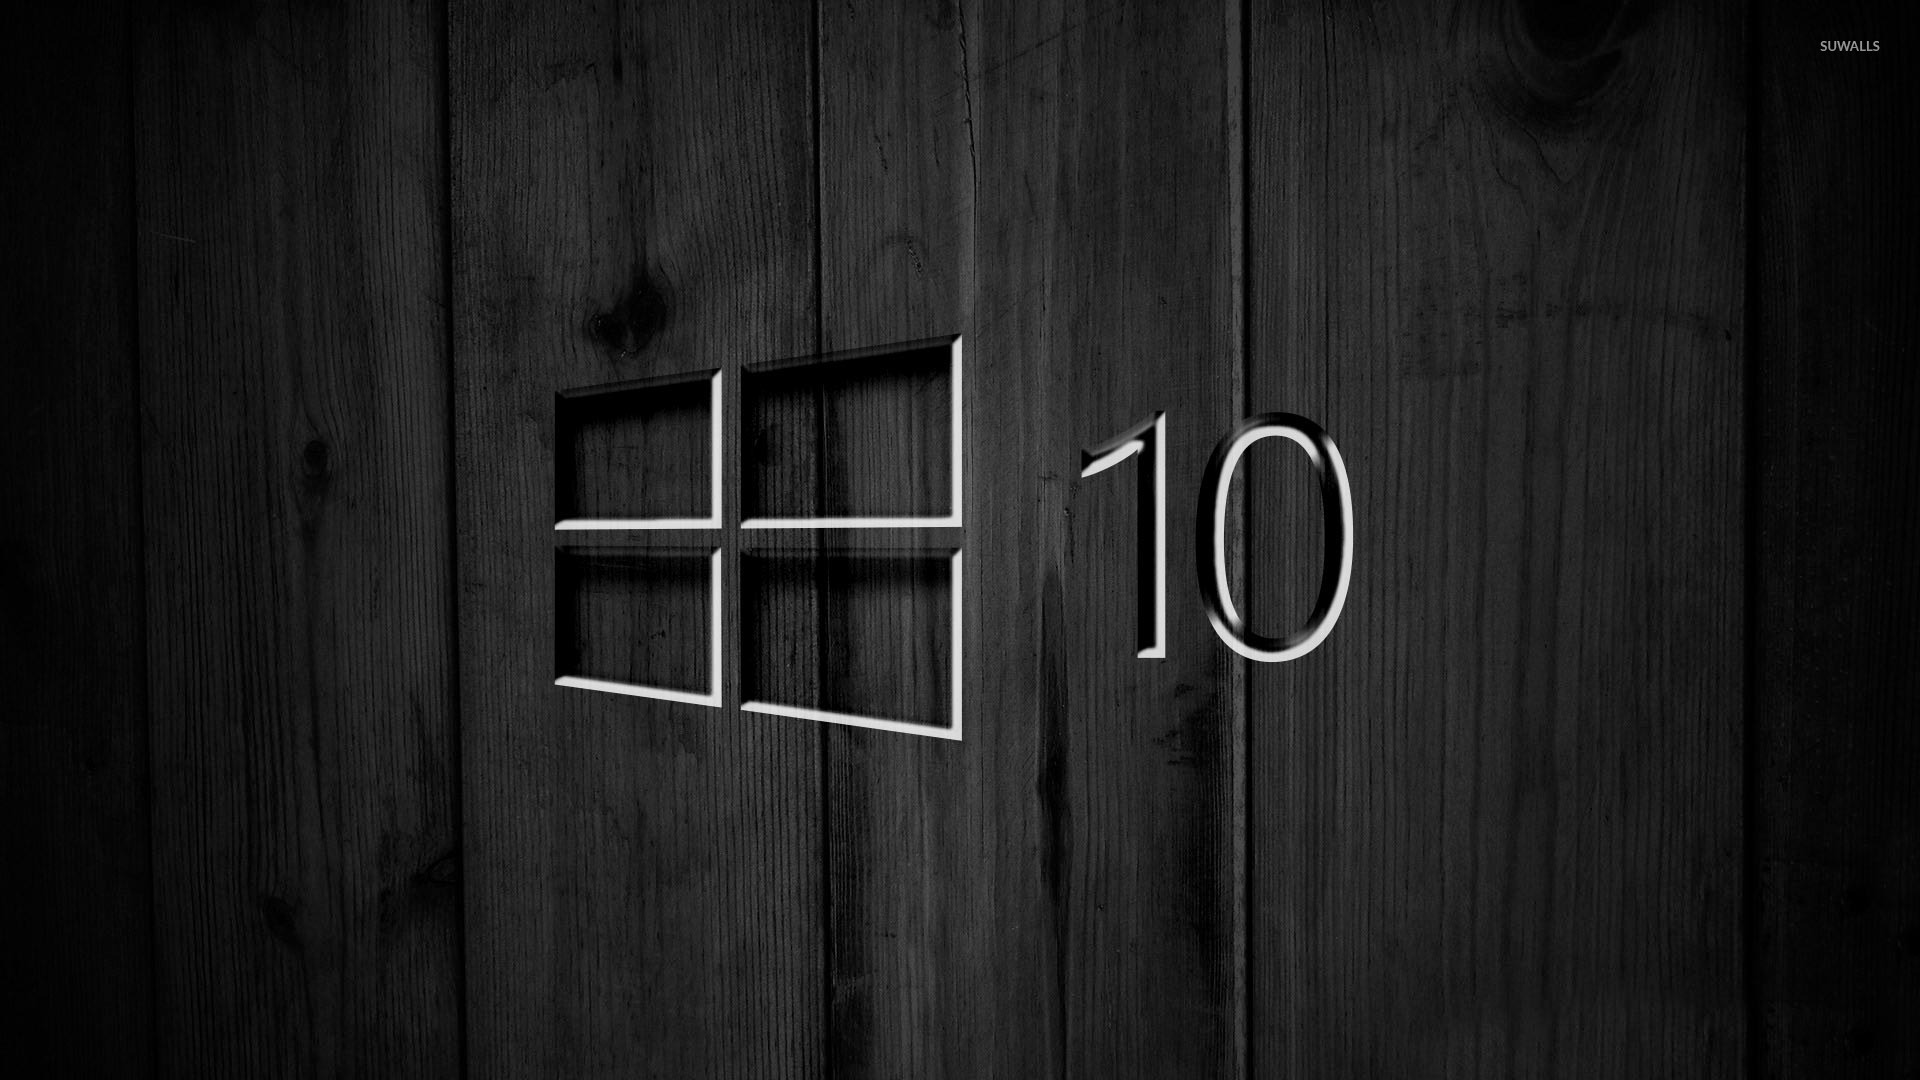 Windows 10 On Black Wooden Panels 4 Wallpaper Computer